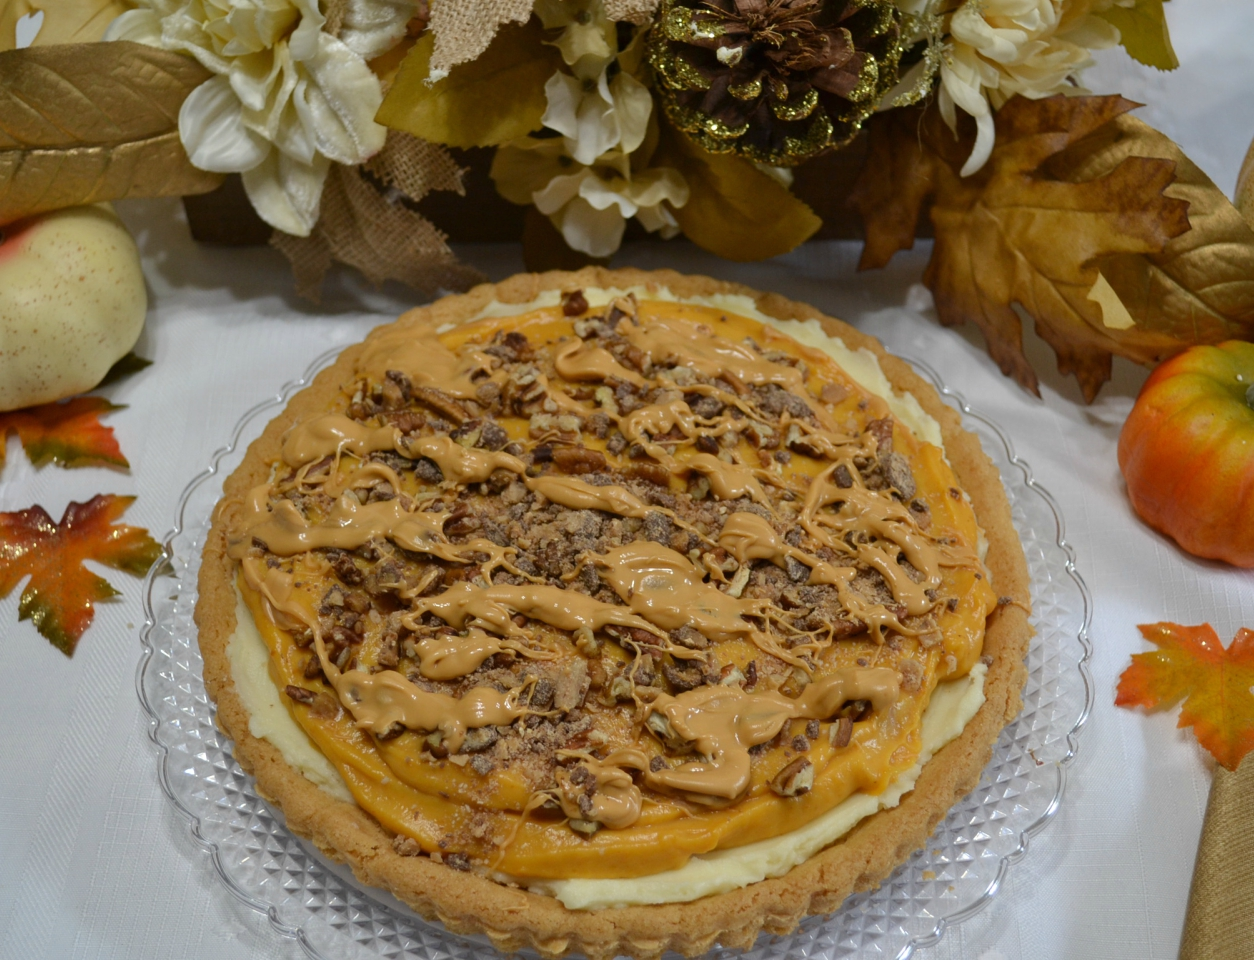 Pumpkin Butterscotch Mascarpone Cookie Tart is a perfect fall dessert with a cookie tart and layers of pumpkin, mascarpone cheese and toppings of toffee bits and butterscotch.